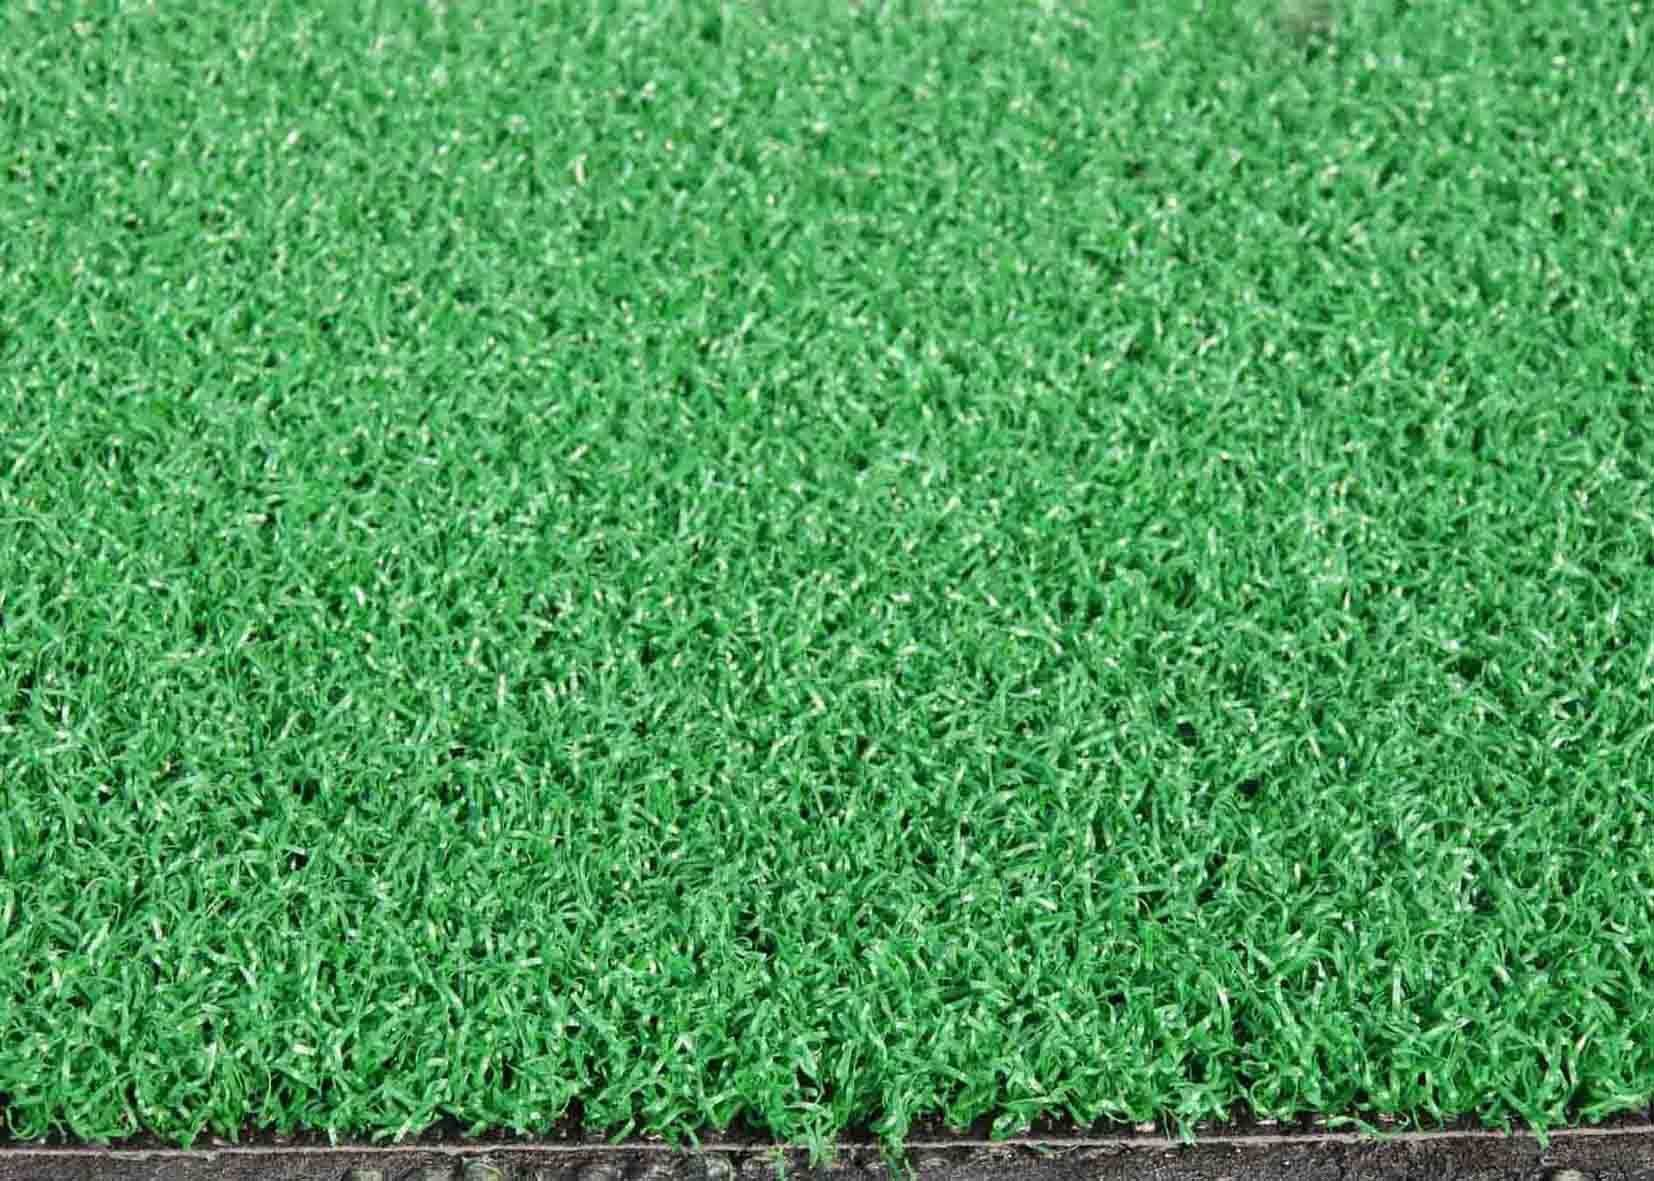 Gr For Golf Artificial Turf Synthetic